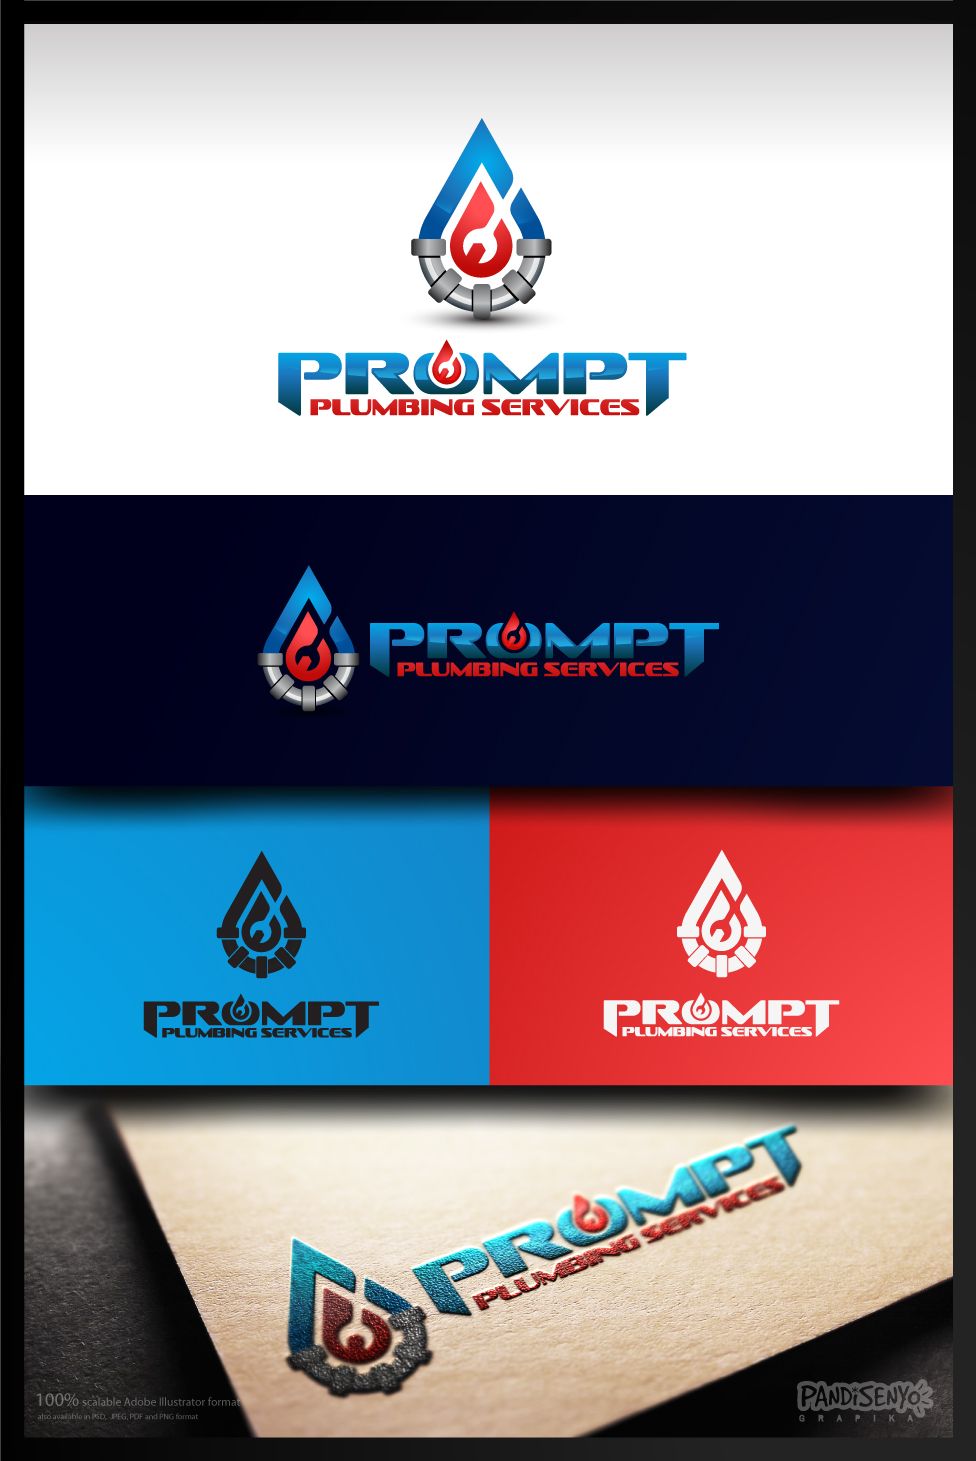 Logo Design by pandisenyo - Entry No. 45 in the Logo Design Contest Artistic Logo Design for Prompt Plumbing Services.